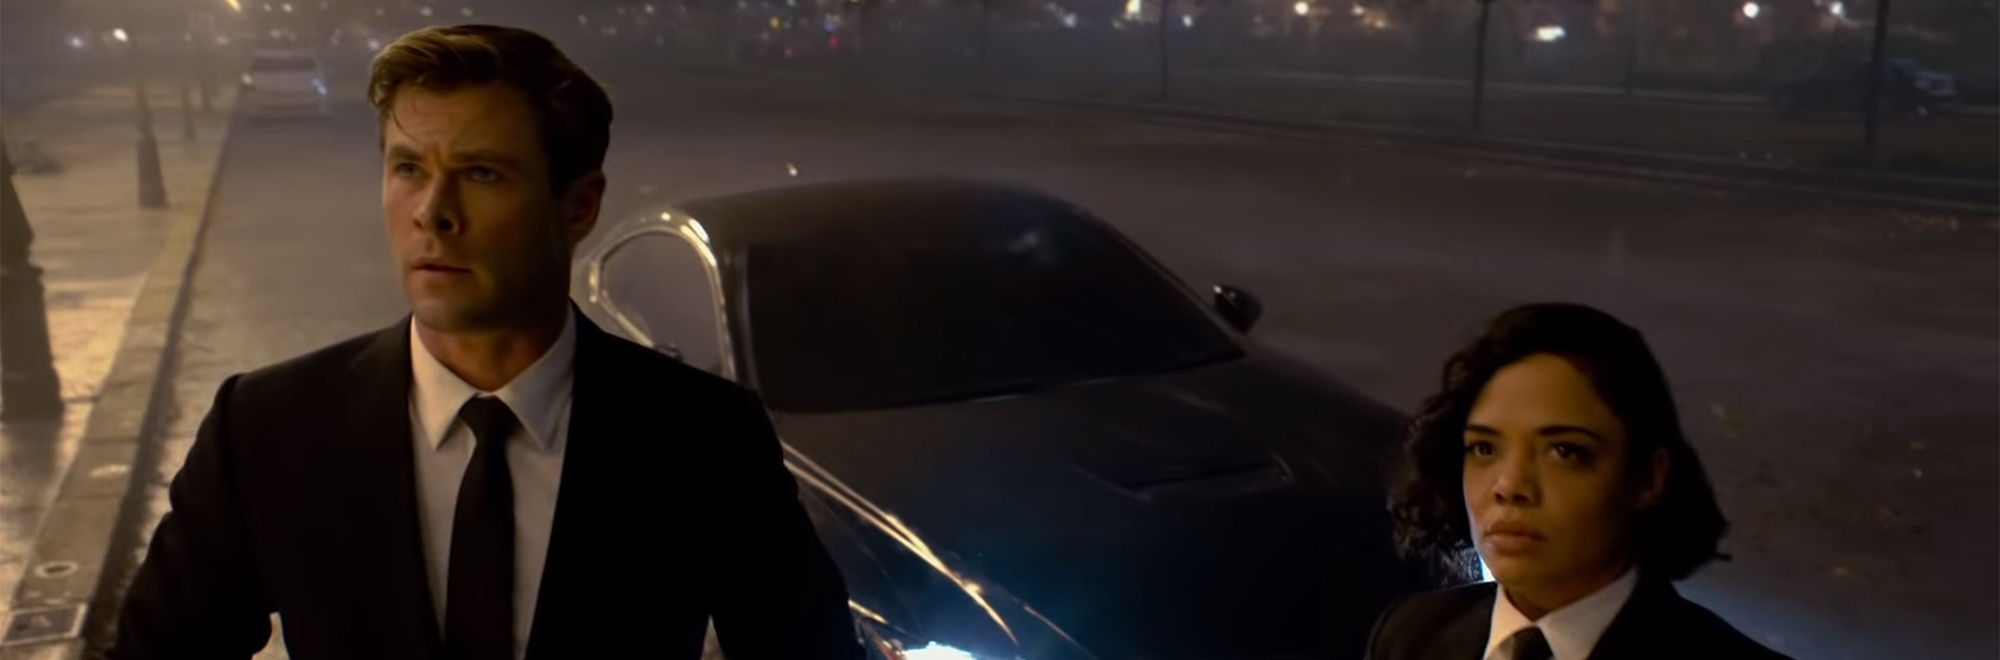 Why Lexus Men in Black-inspired ads fail to inspire